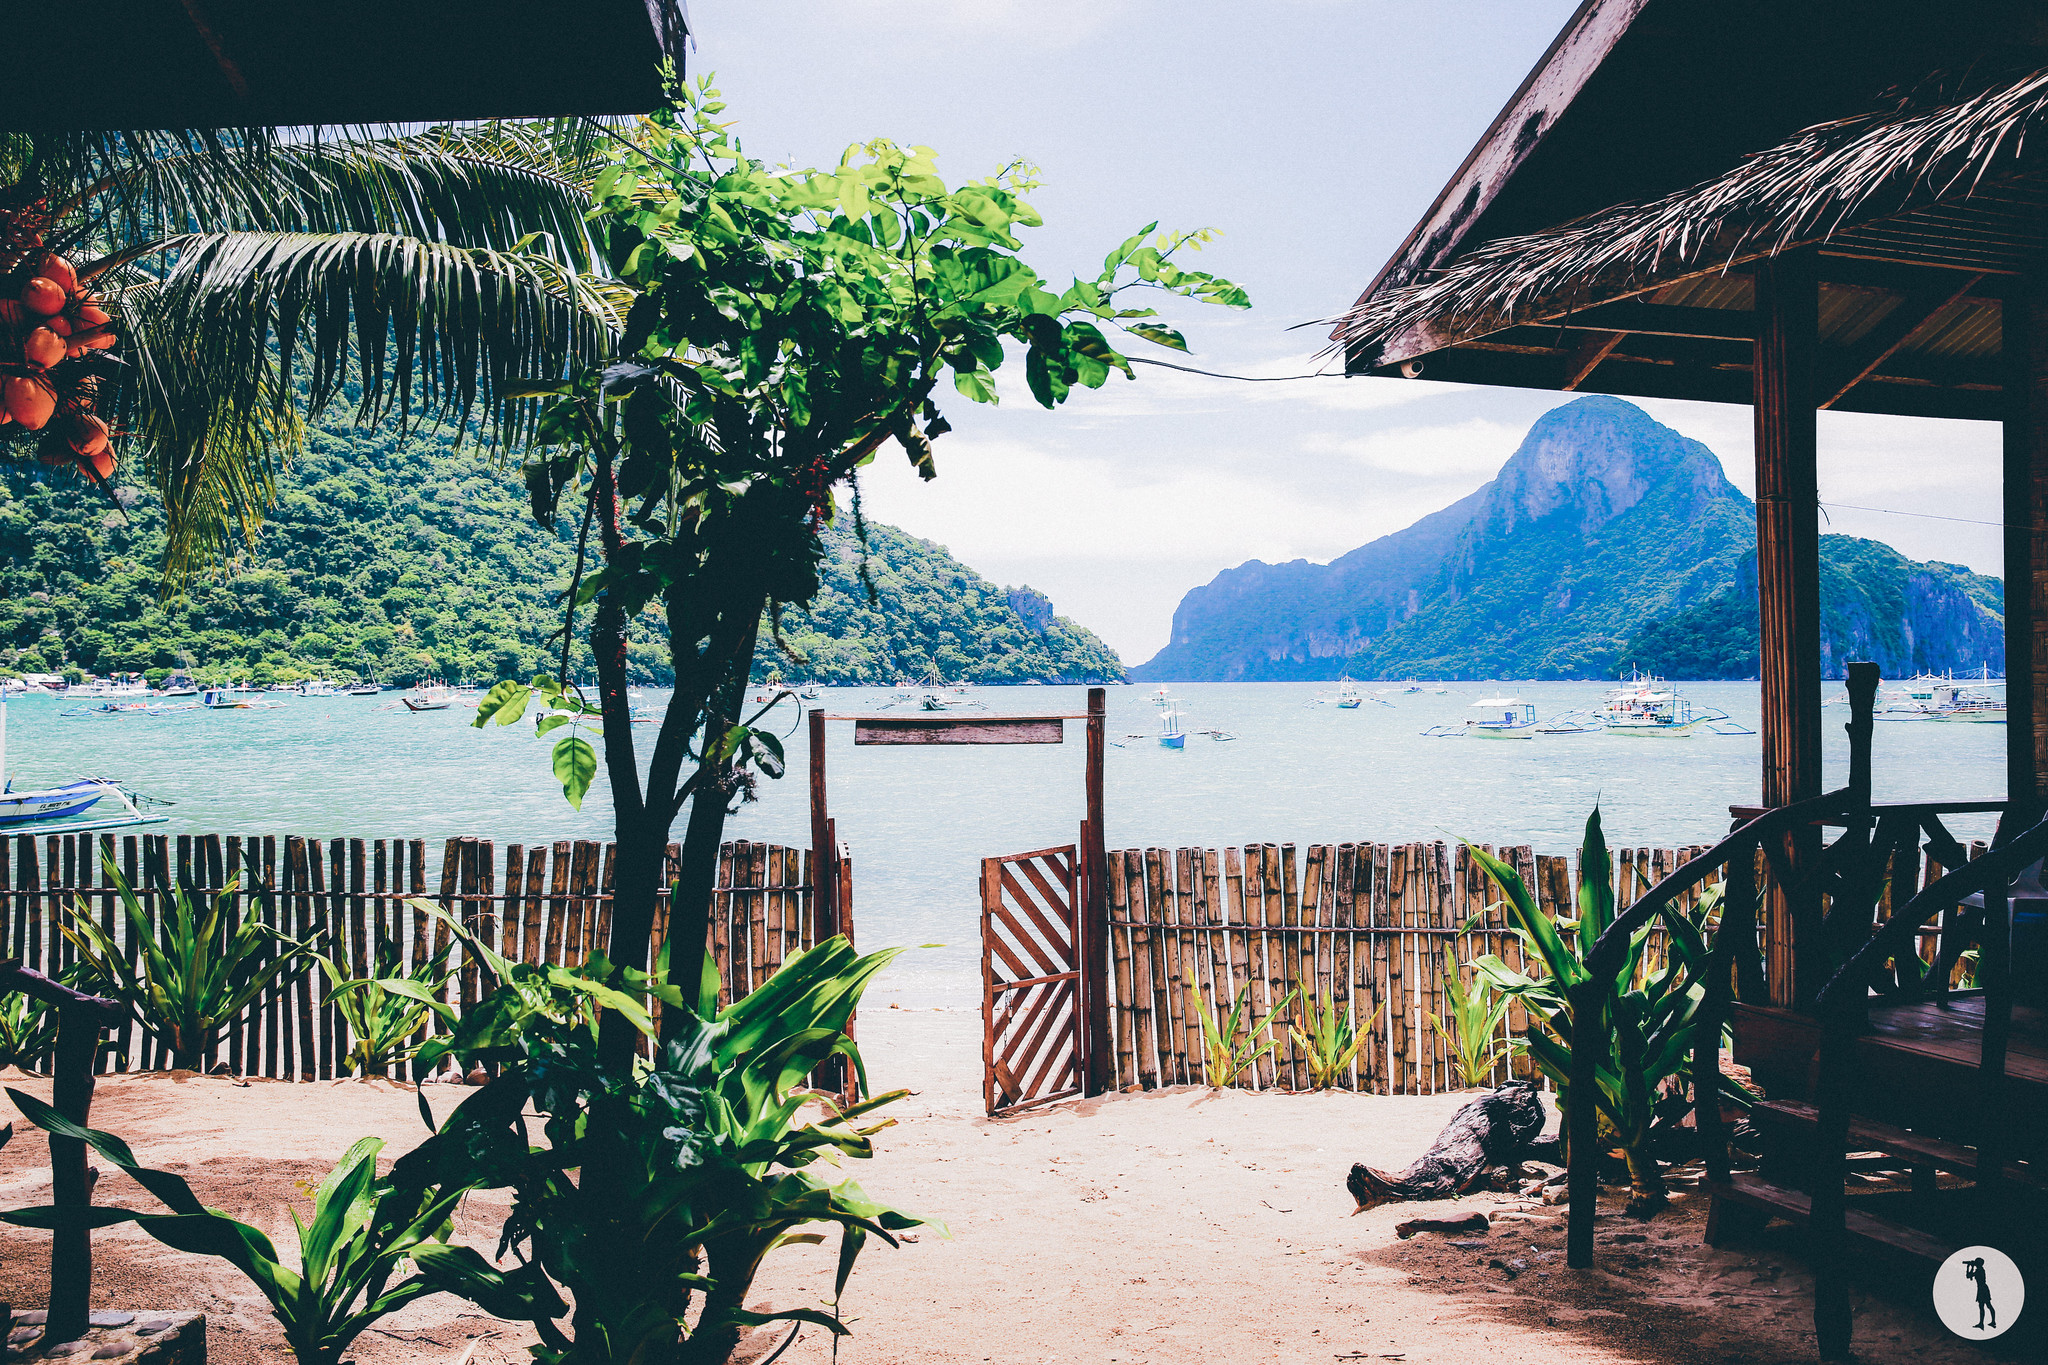 Travel to the Philippines - El Nido, Palawan.